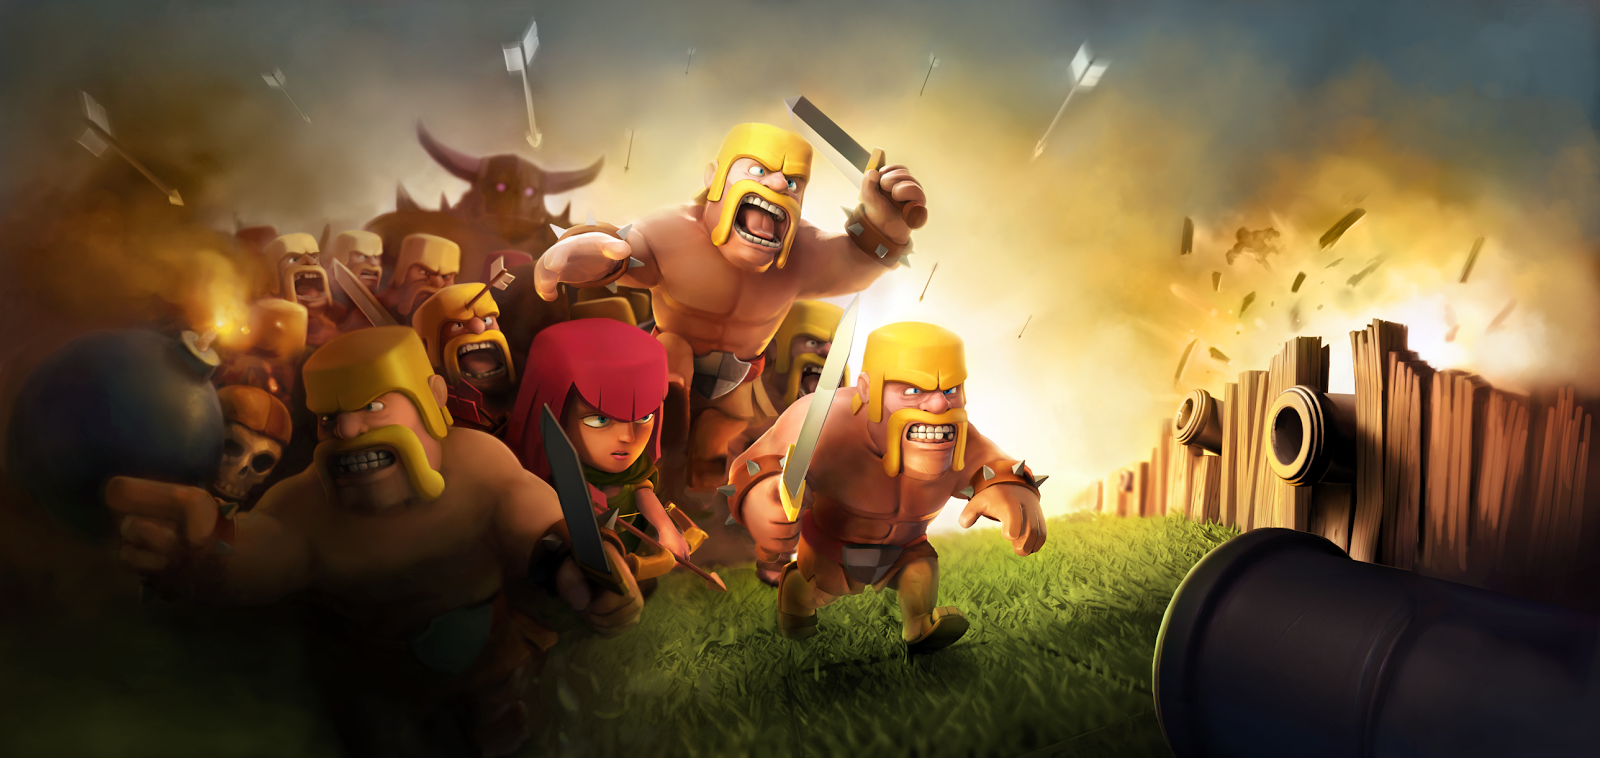 Clash of Clans HD Wallpapers